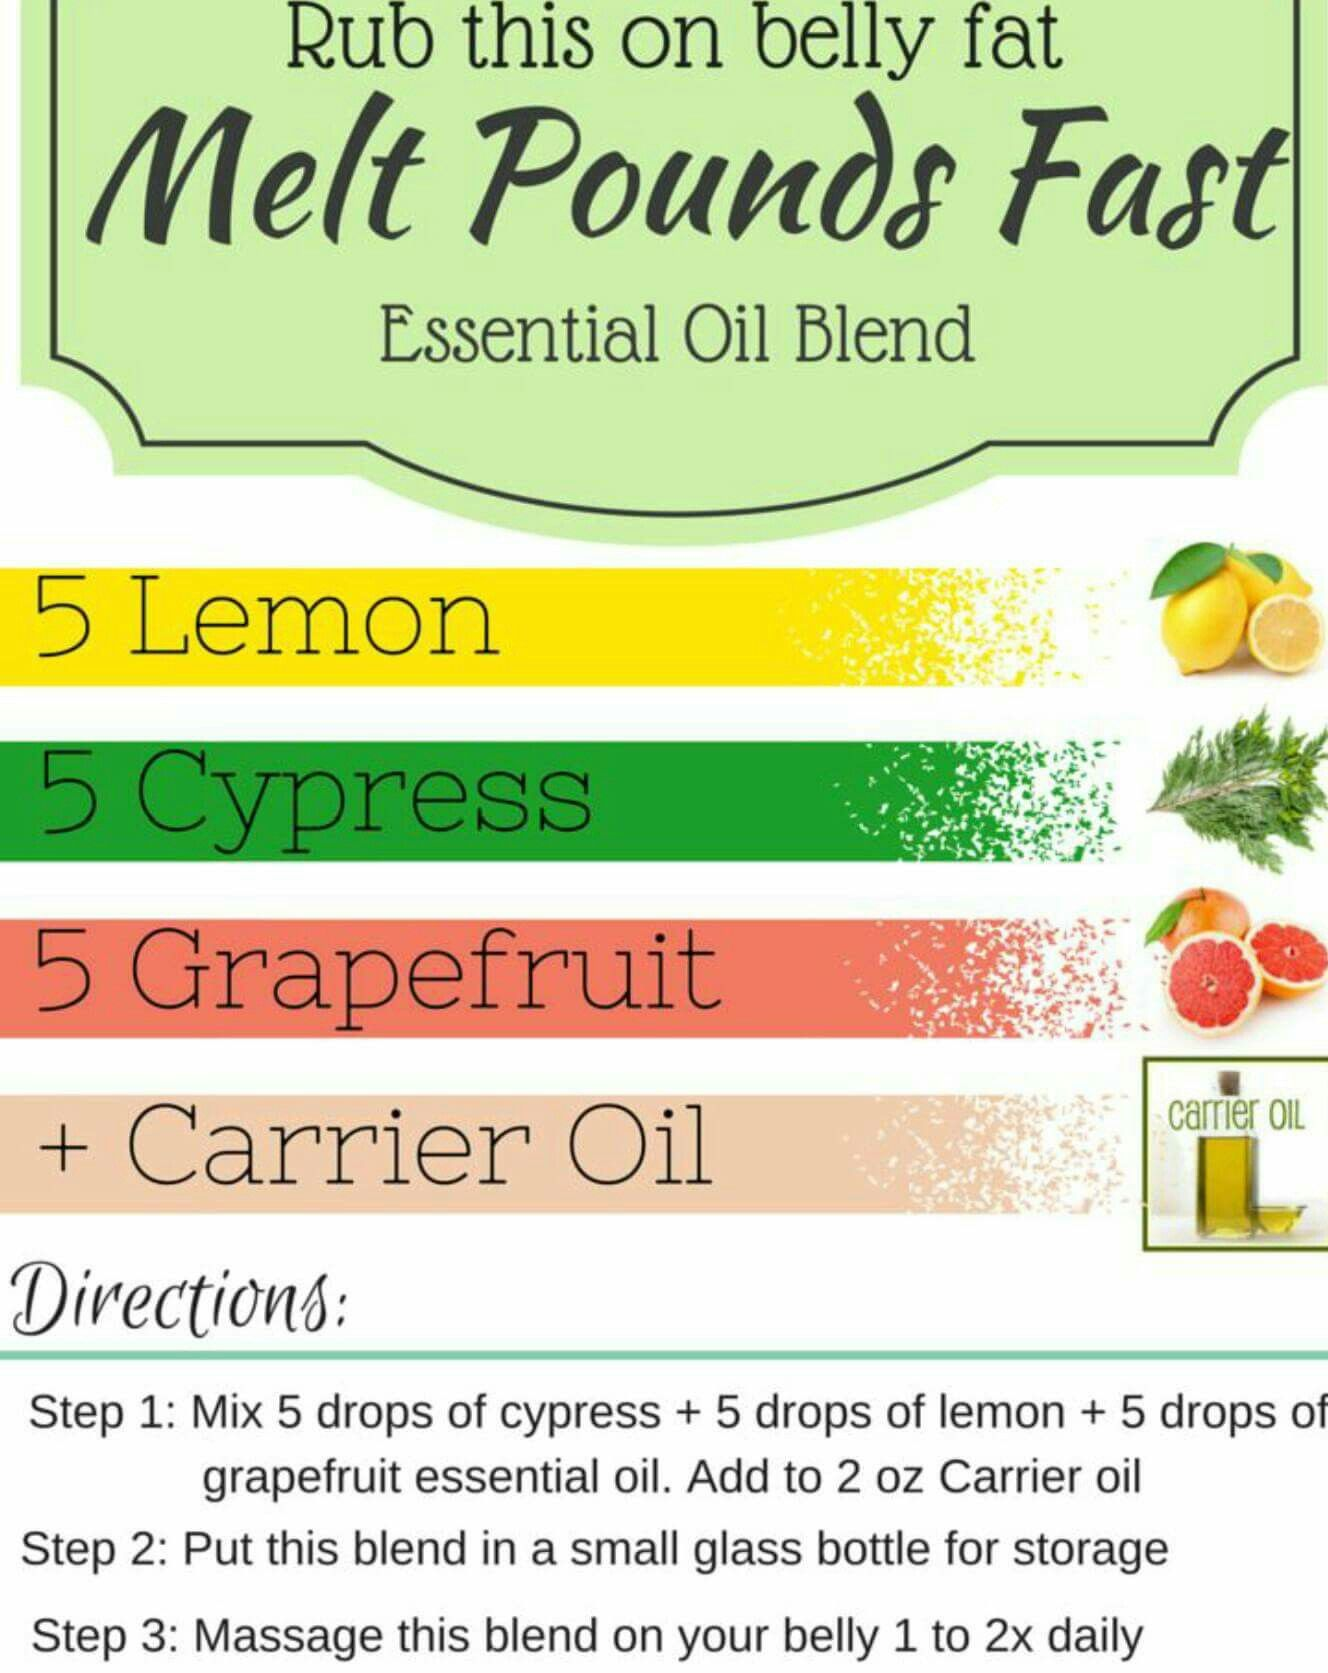 Does grapefruit essential oil help you lose weight